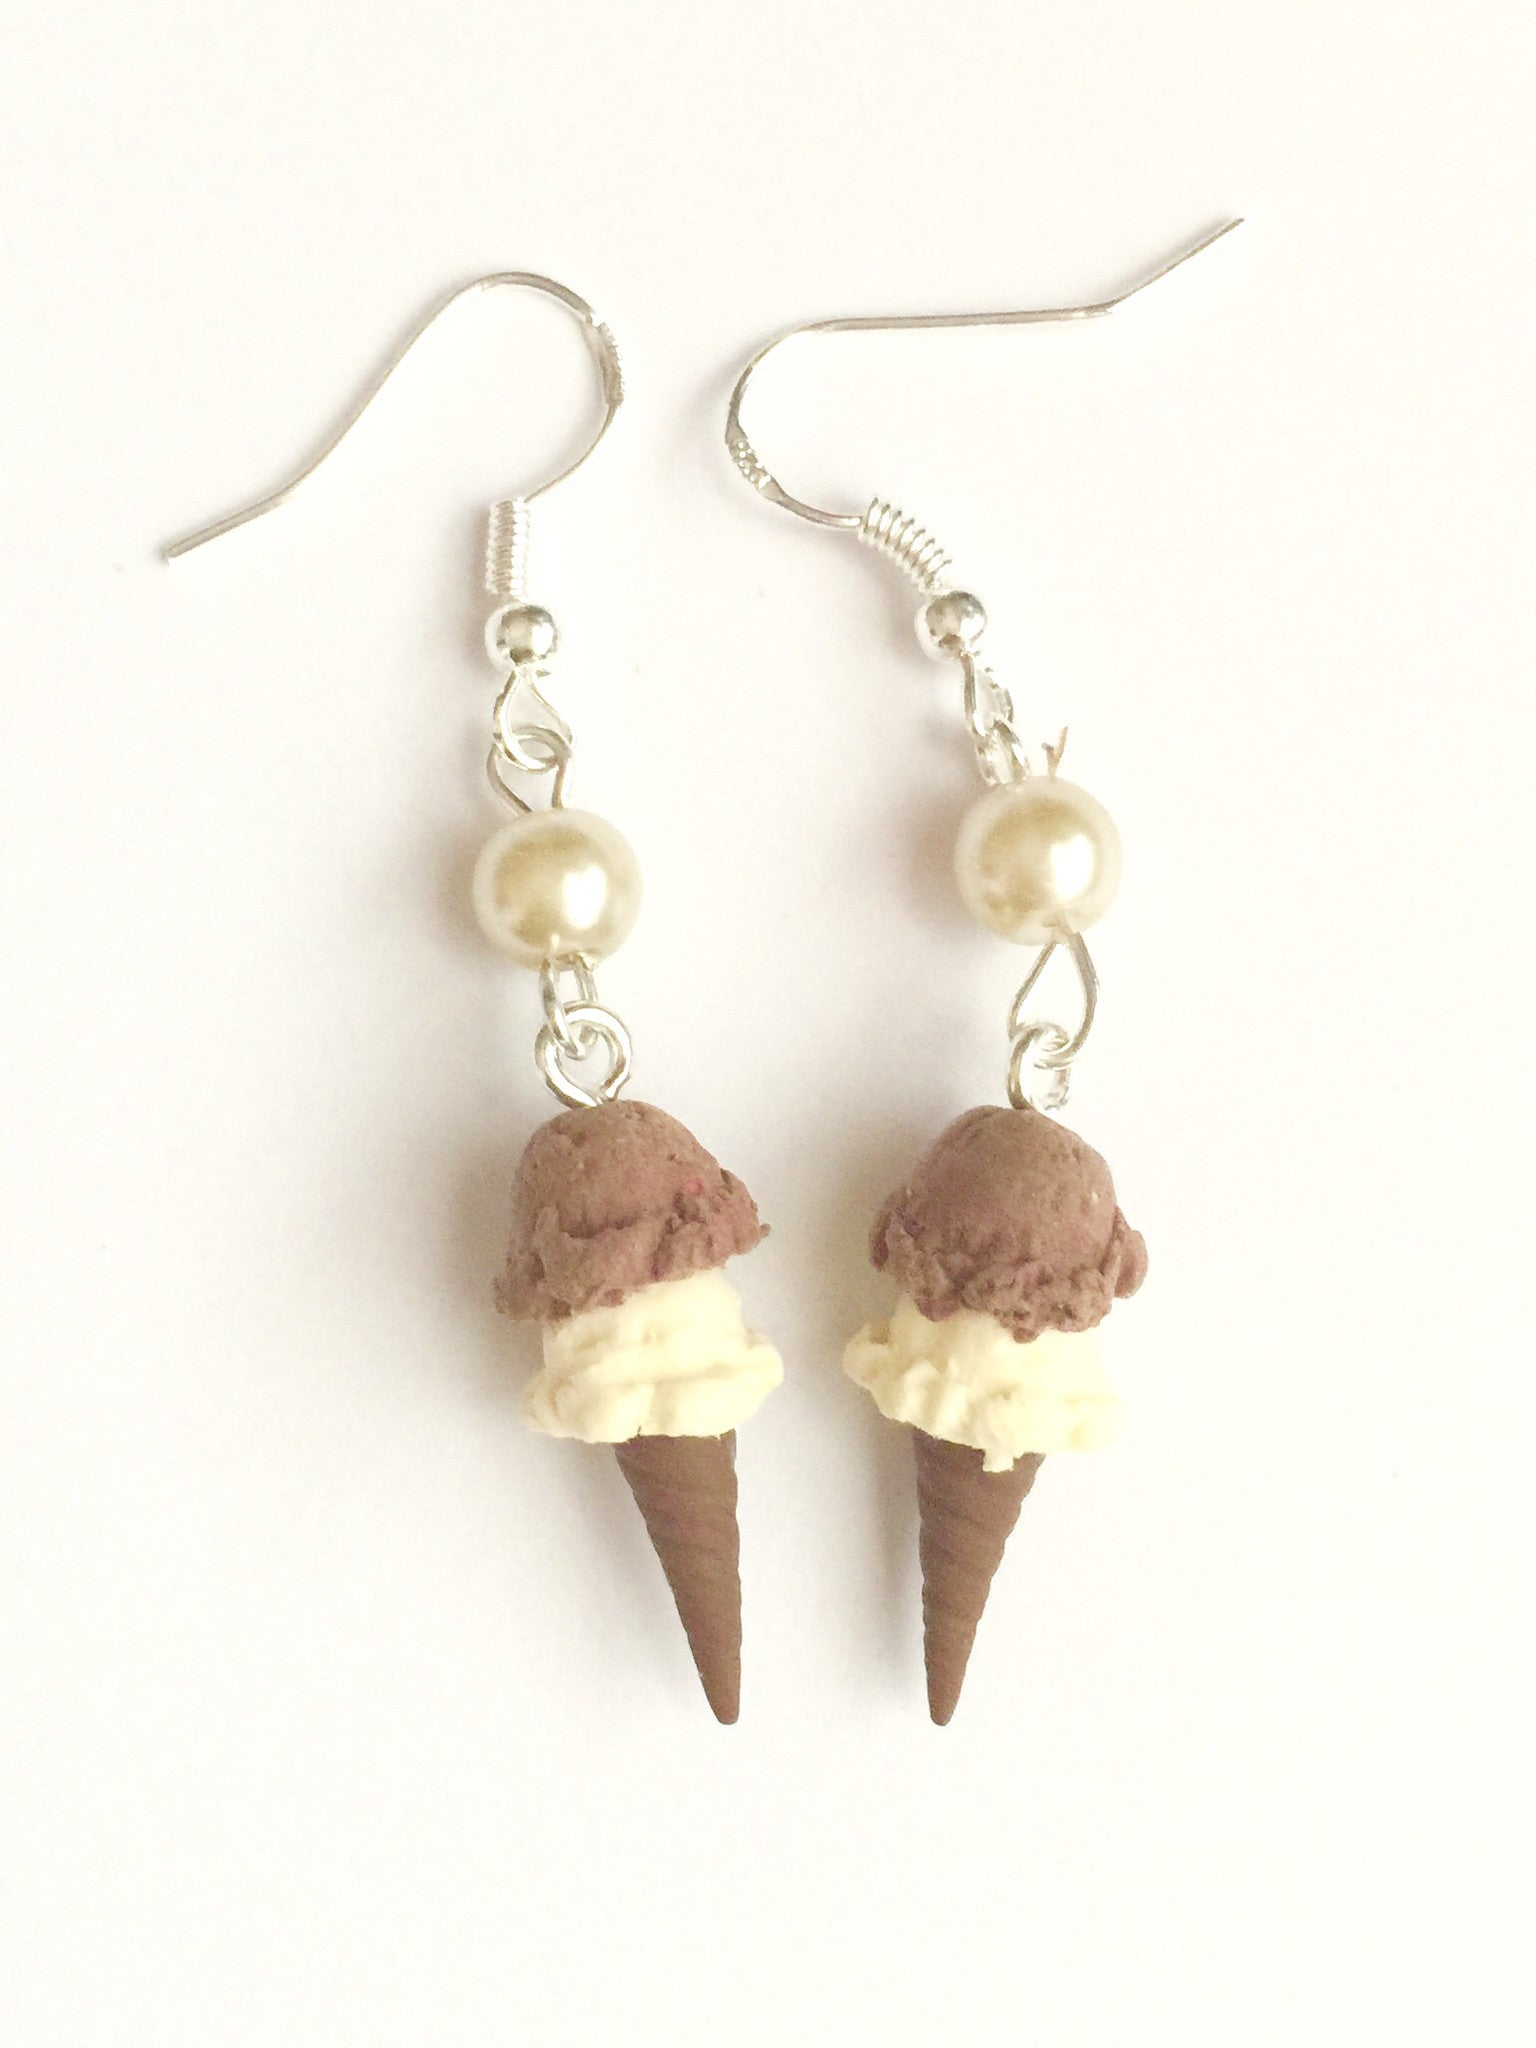 ice cream cone earrings - Jillicious charms and accessories - 4